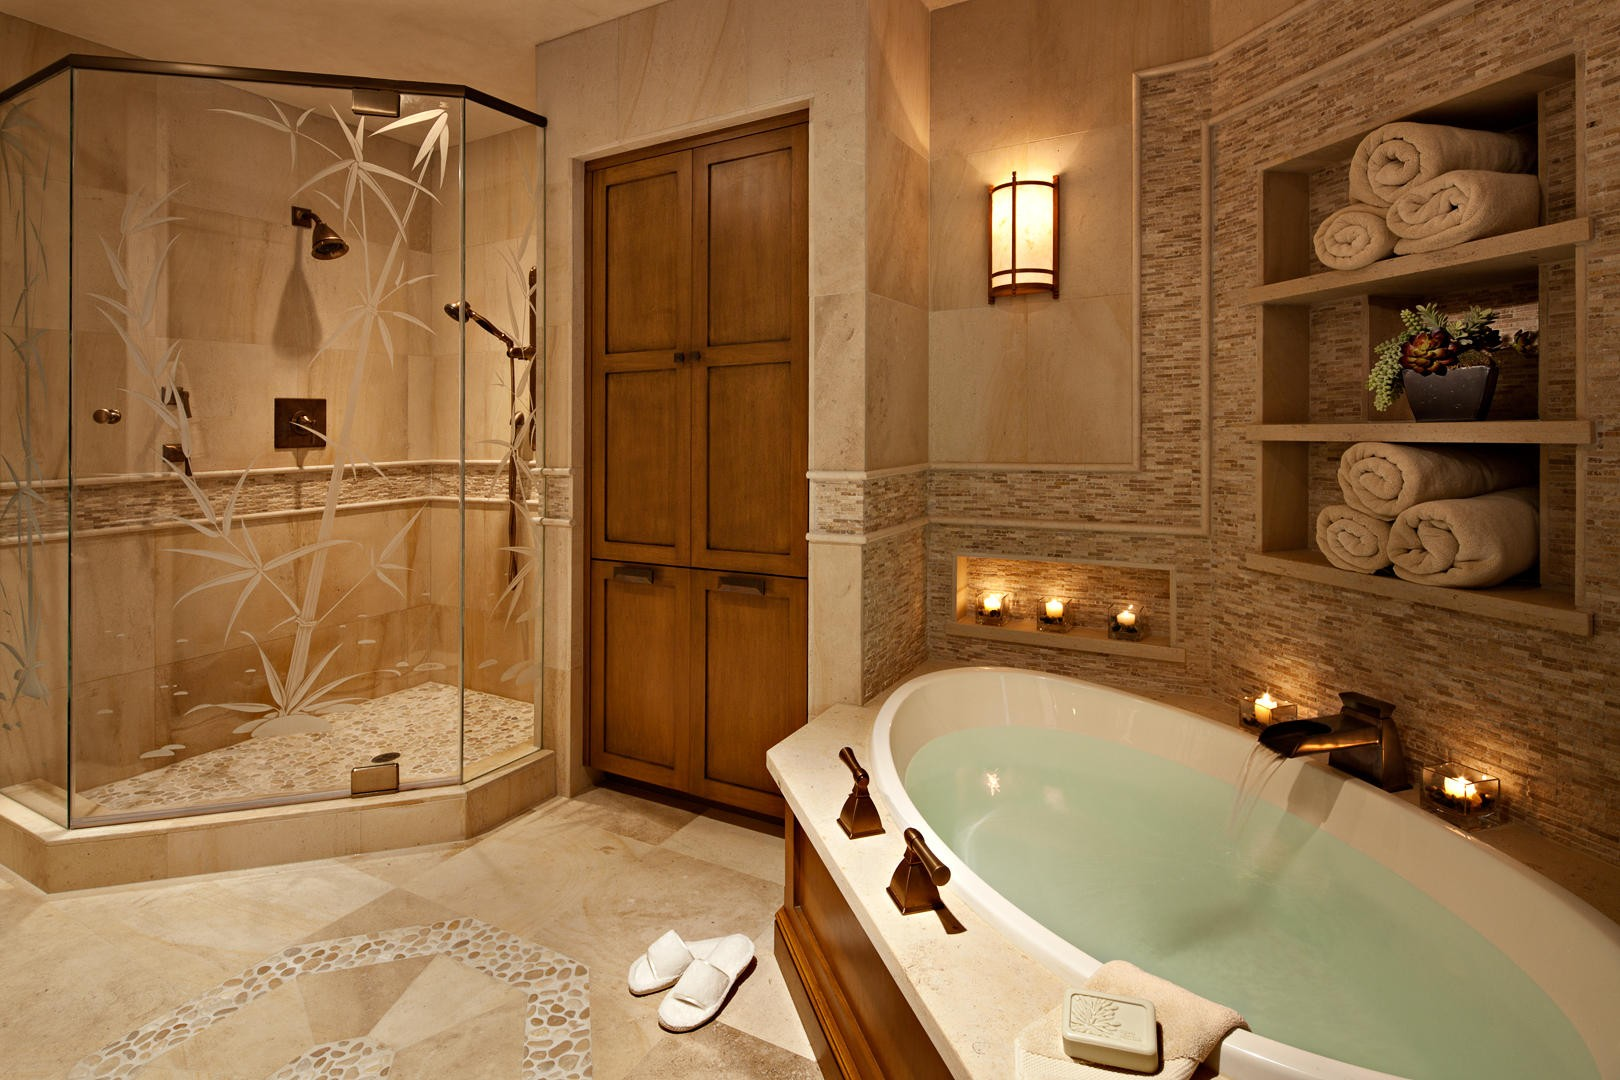 spa bathroom shower ideas photo - 1